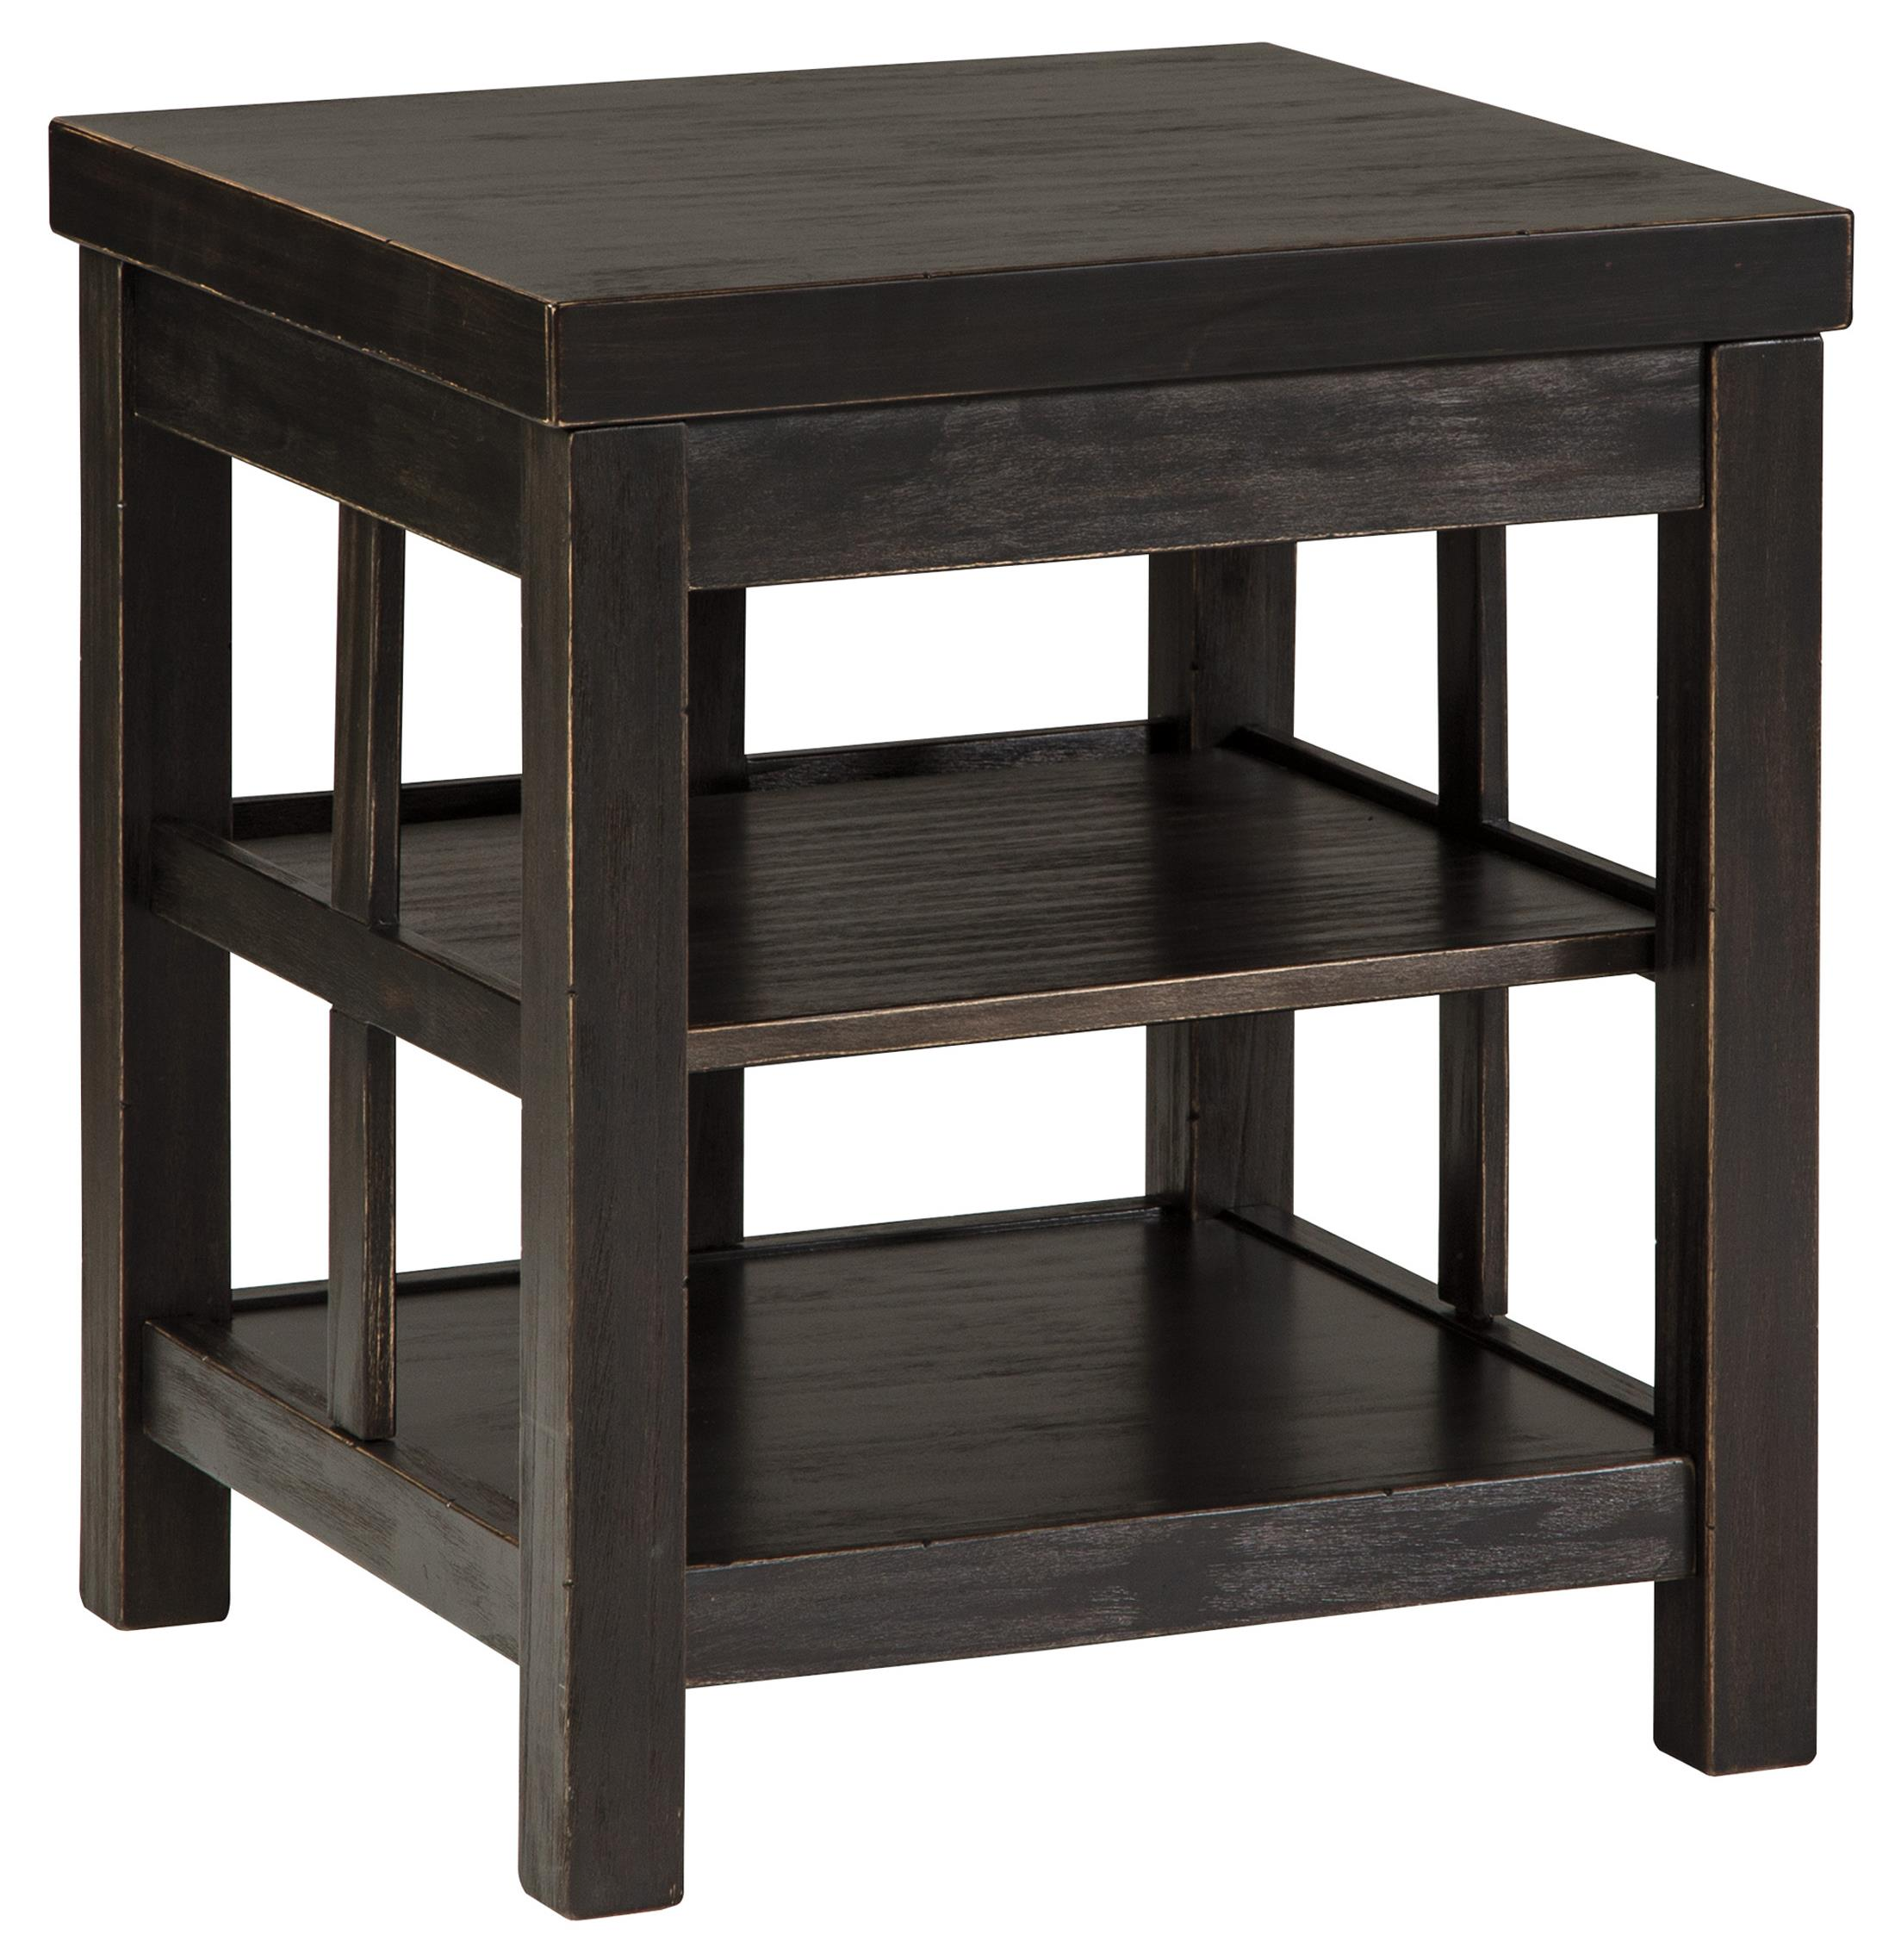 rustic distressed black square end table with 2 shelves by signature design by ashley wolf and. Black Bedroom Furniture Sets. Home Design Ideas